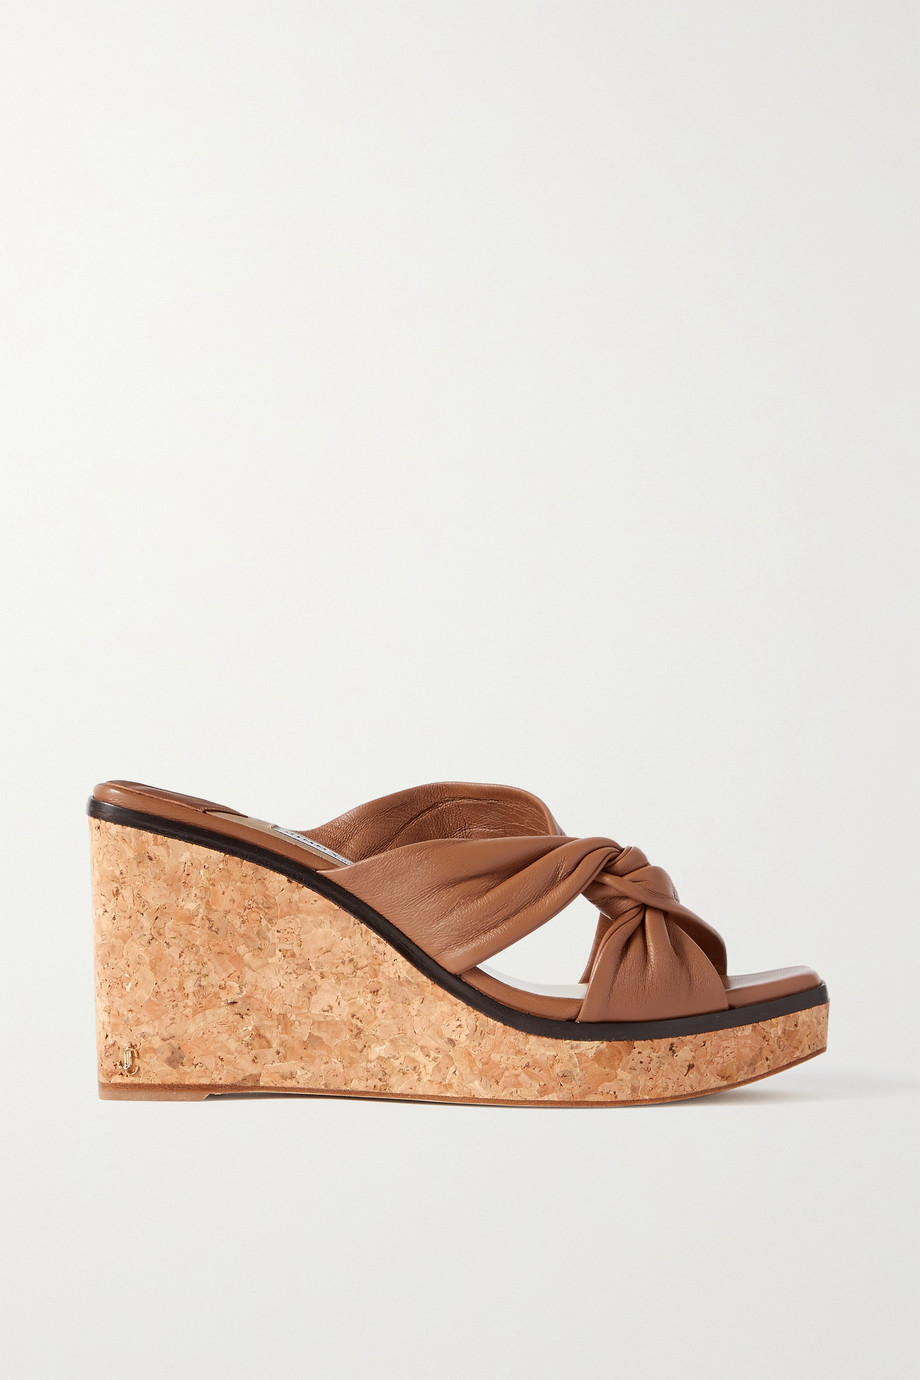 Jimmy Choo Narisa 90 knotted leather wedge sandals